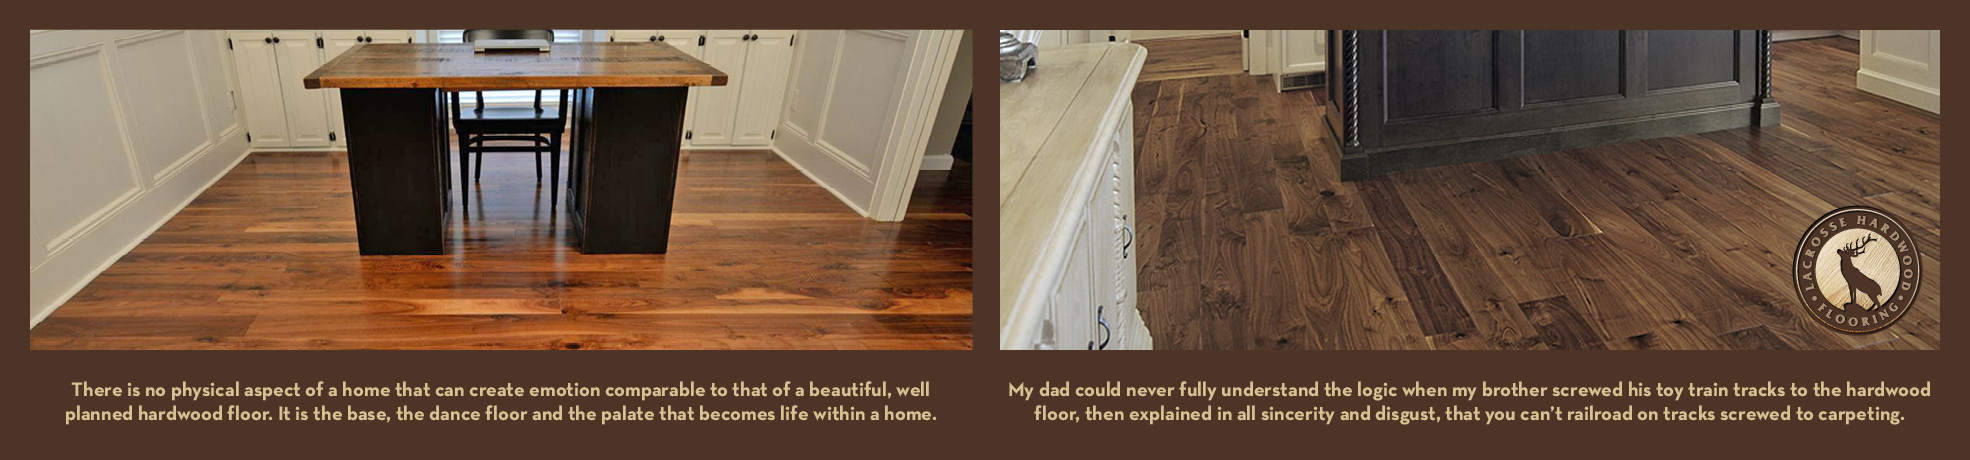 Hardwood Floor Refinishing London Ontario Of Lacrosse Hardwood Flooring Walnut White Oak Red Oak Hickory for Lhfsliderv22